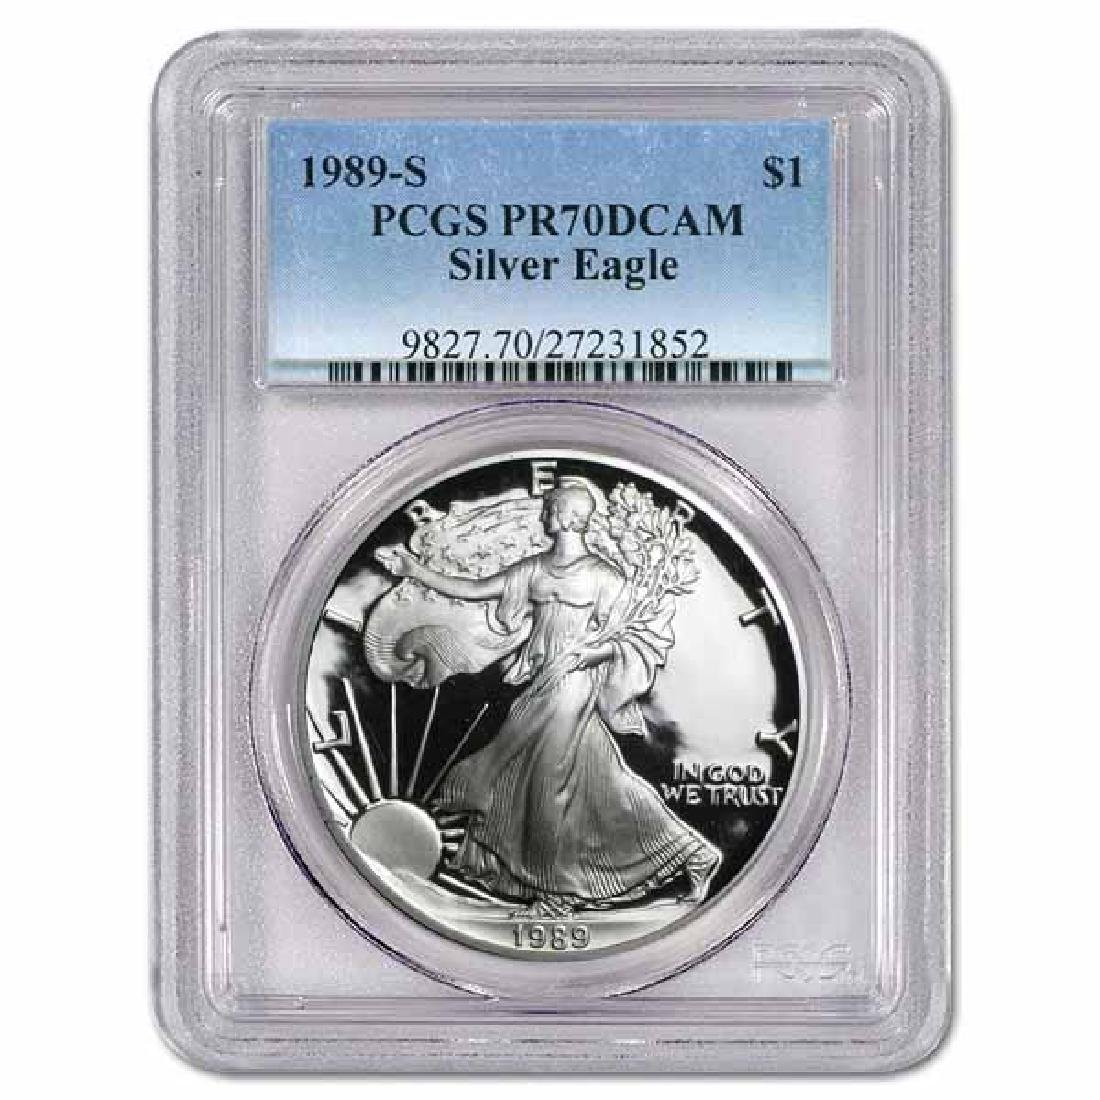 Certified Proof Silver Eagle 1989-S PR70DCAM PCGS